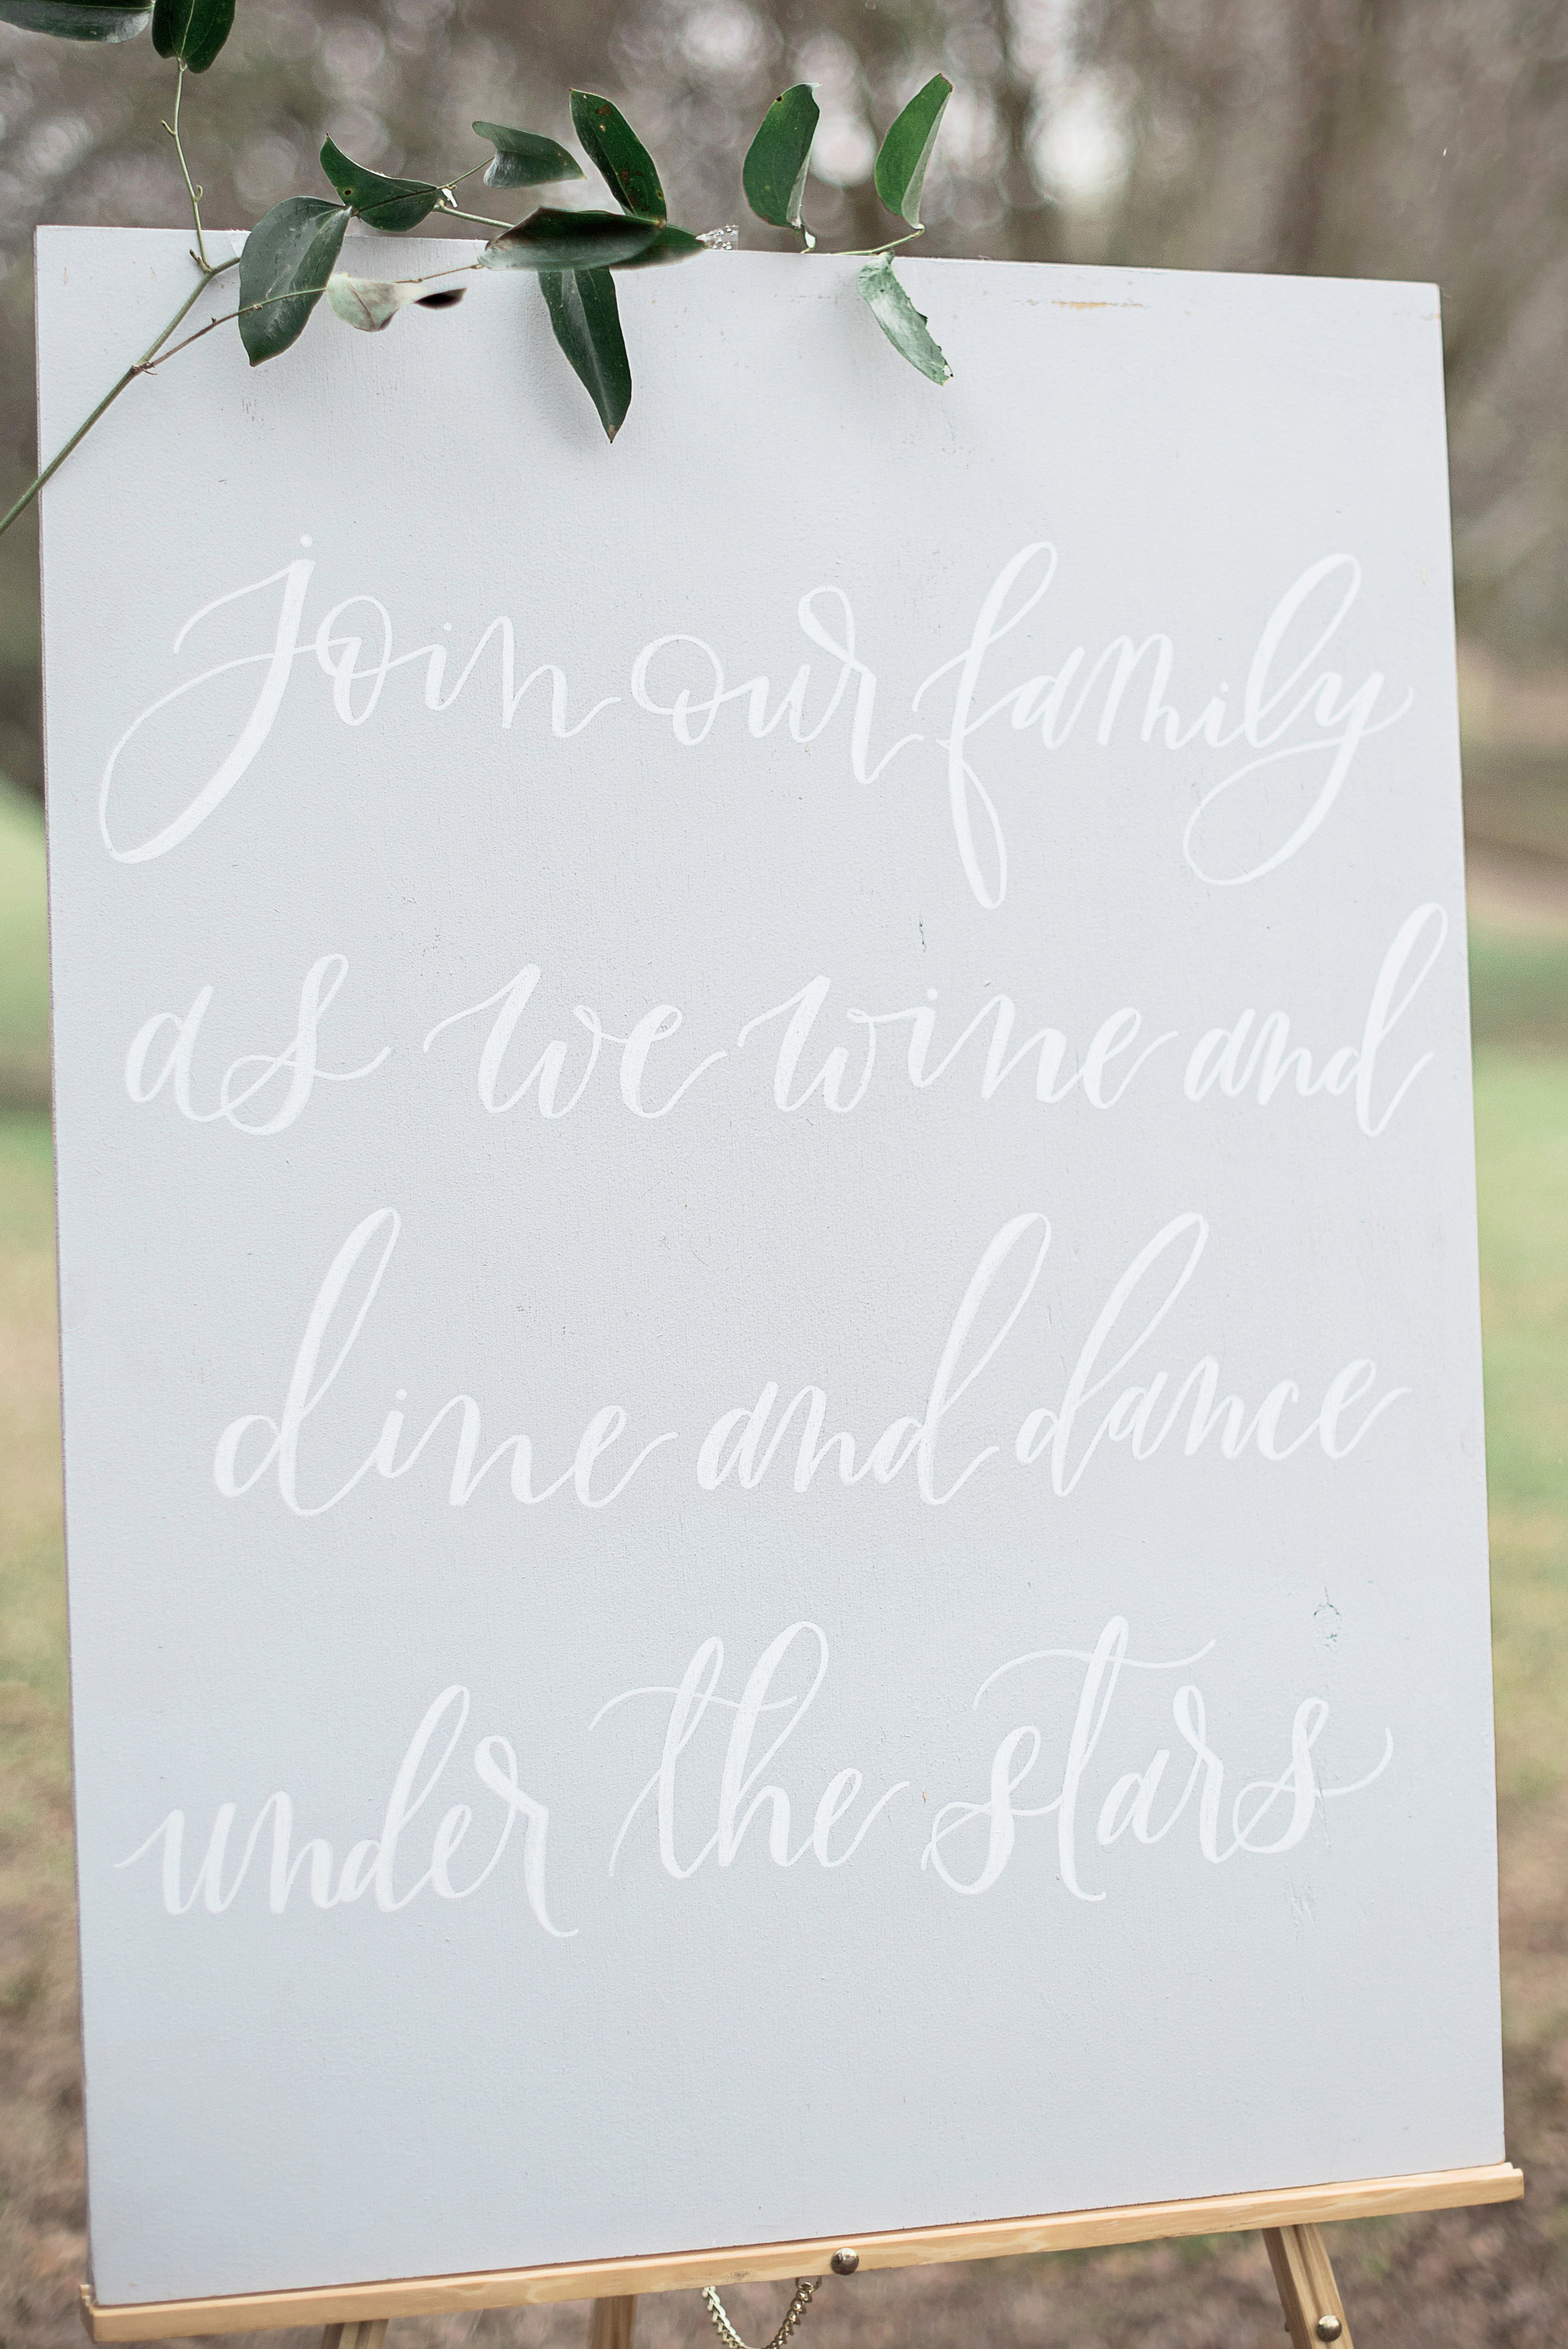 All rights are reserved to Rachel Elaine Photography, LLC.